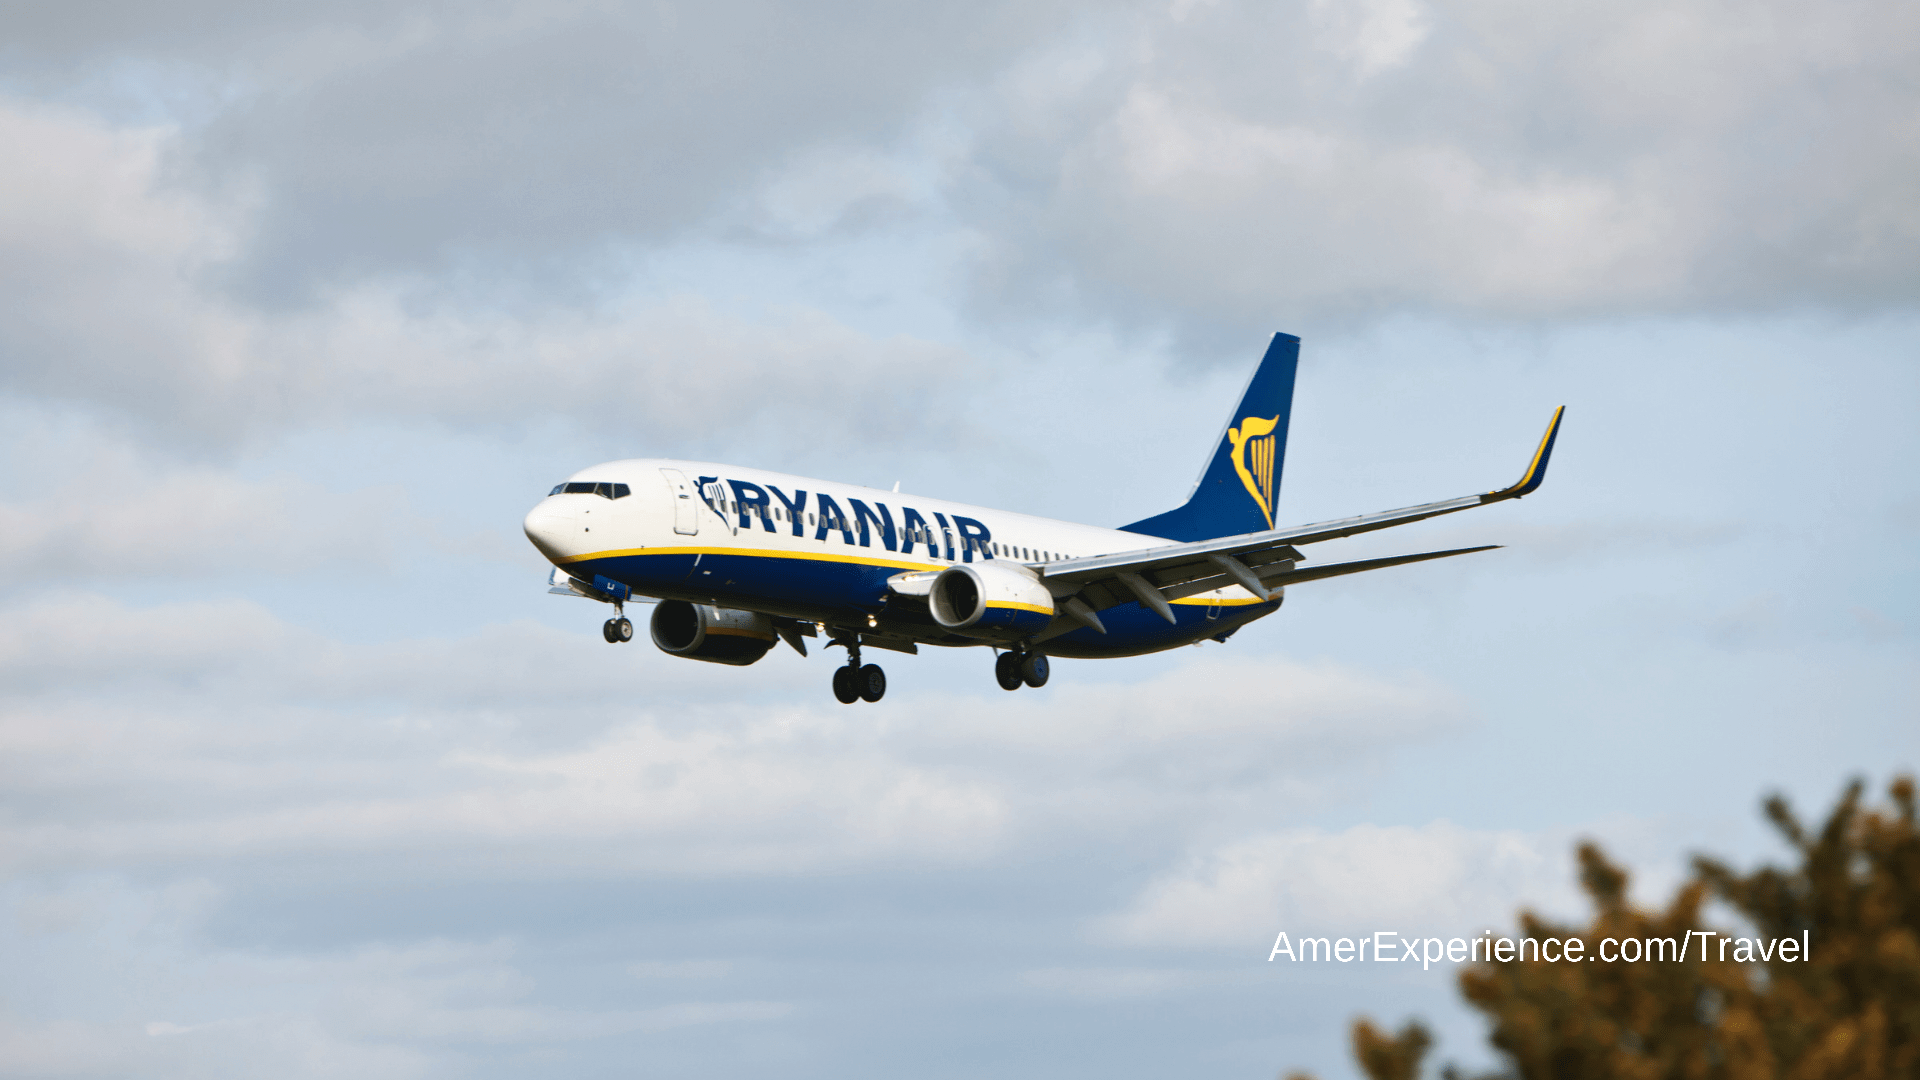 Ryanair: Holiday prices likely to rise sharply soon